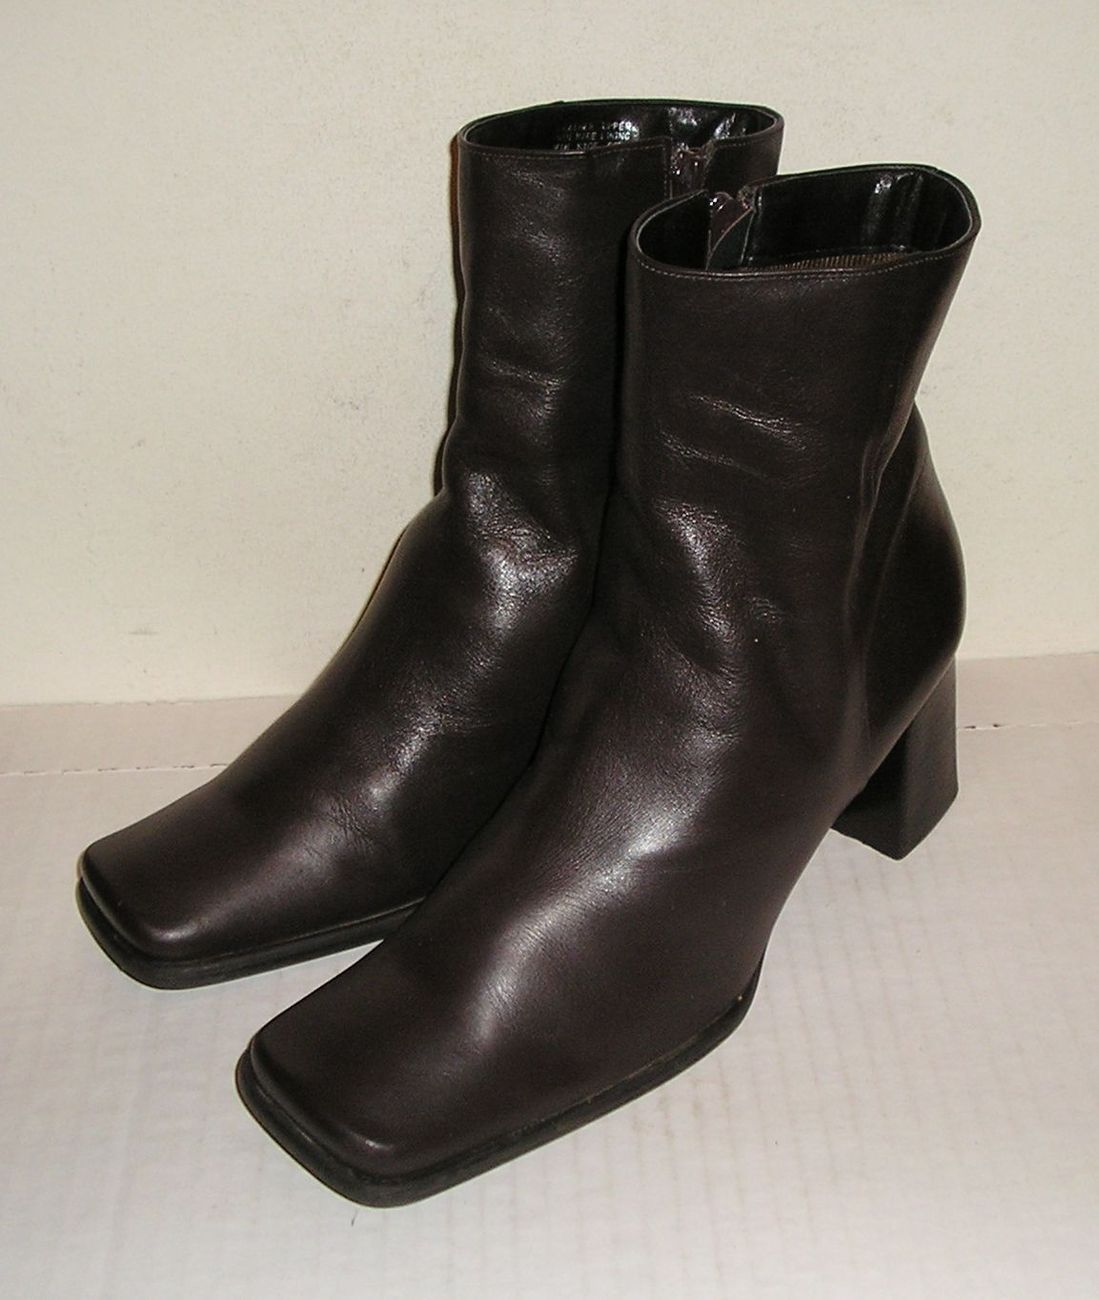 Nine west zamir women s brown leather dress ankle boots 9.5 m  1